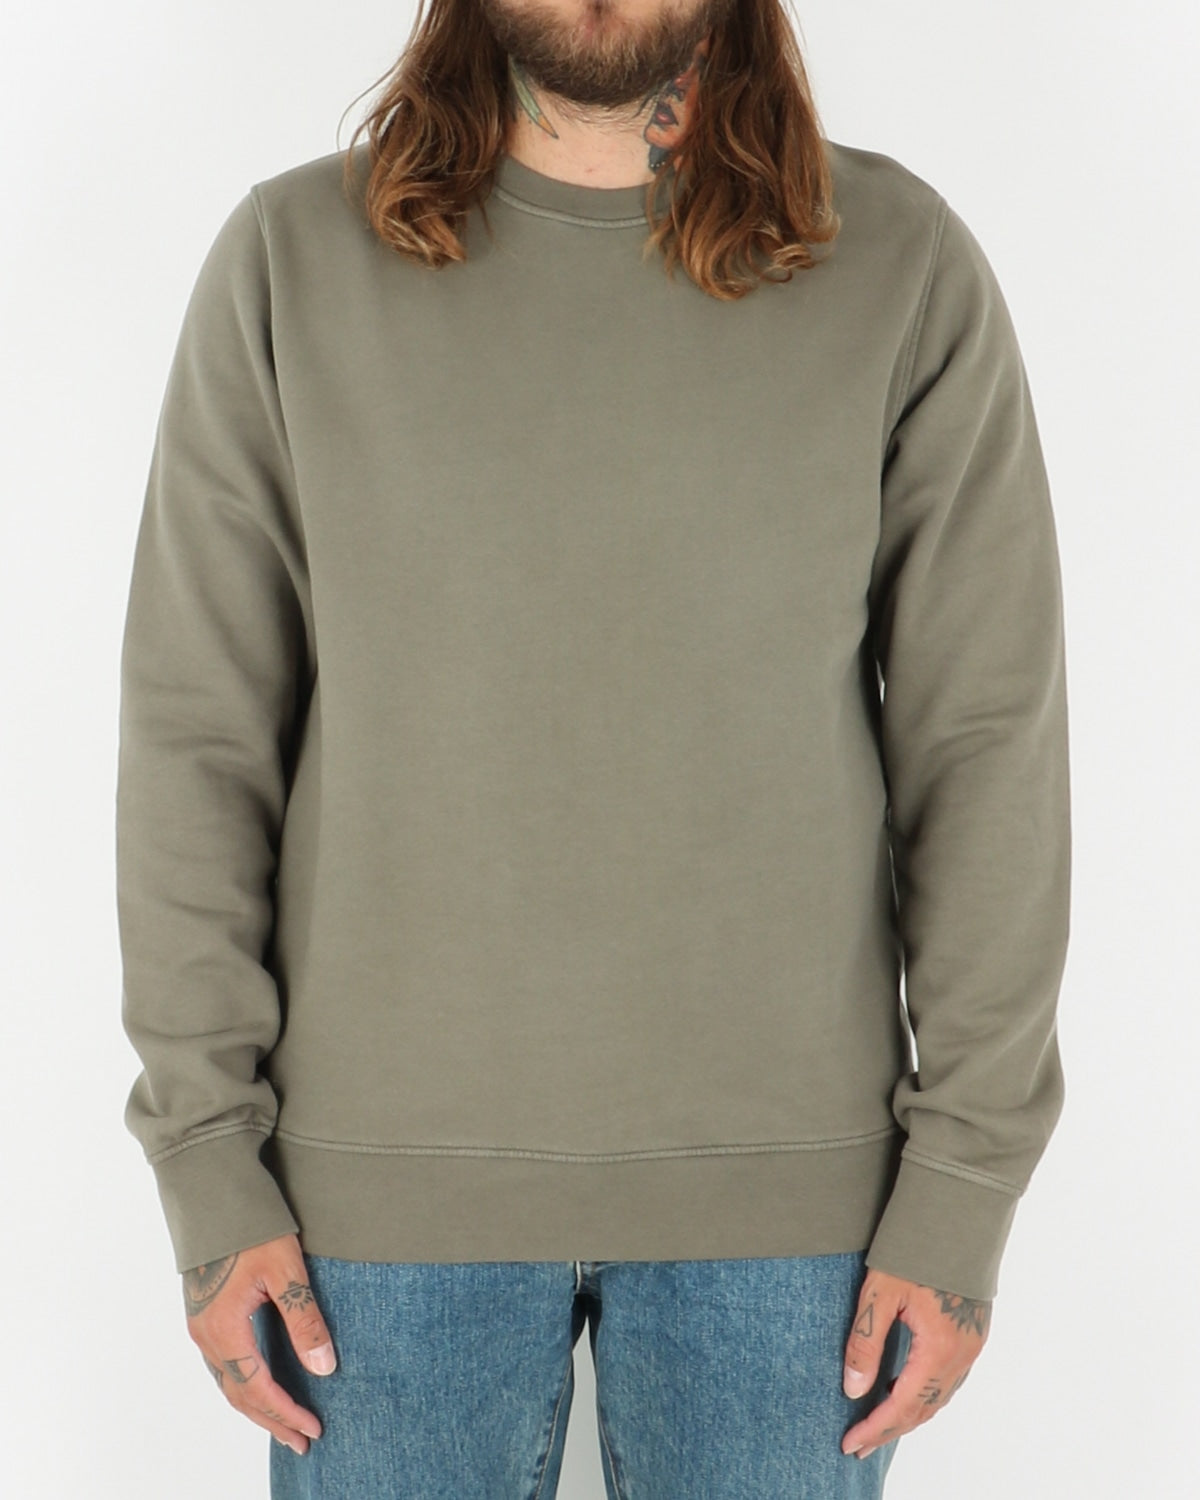 colorful standard_classic organic crew neck_dusty olive_1_2